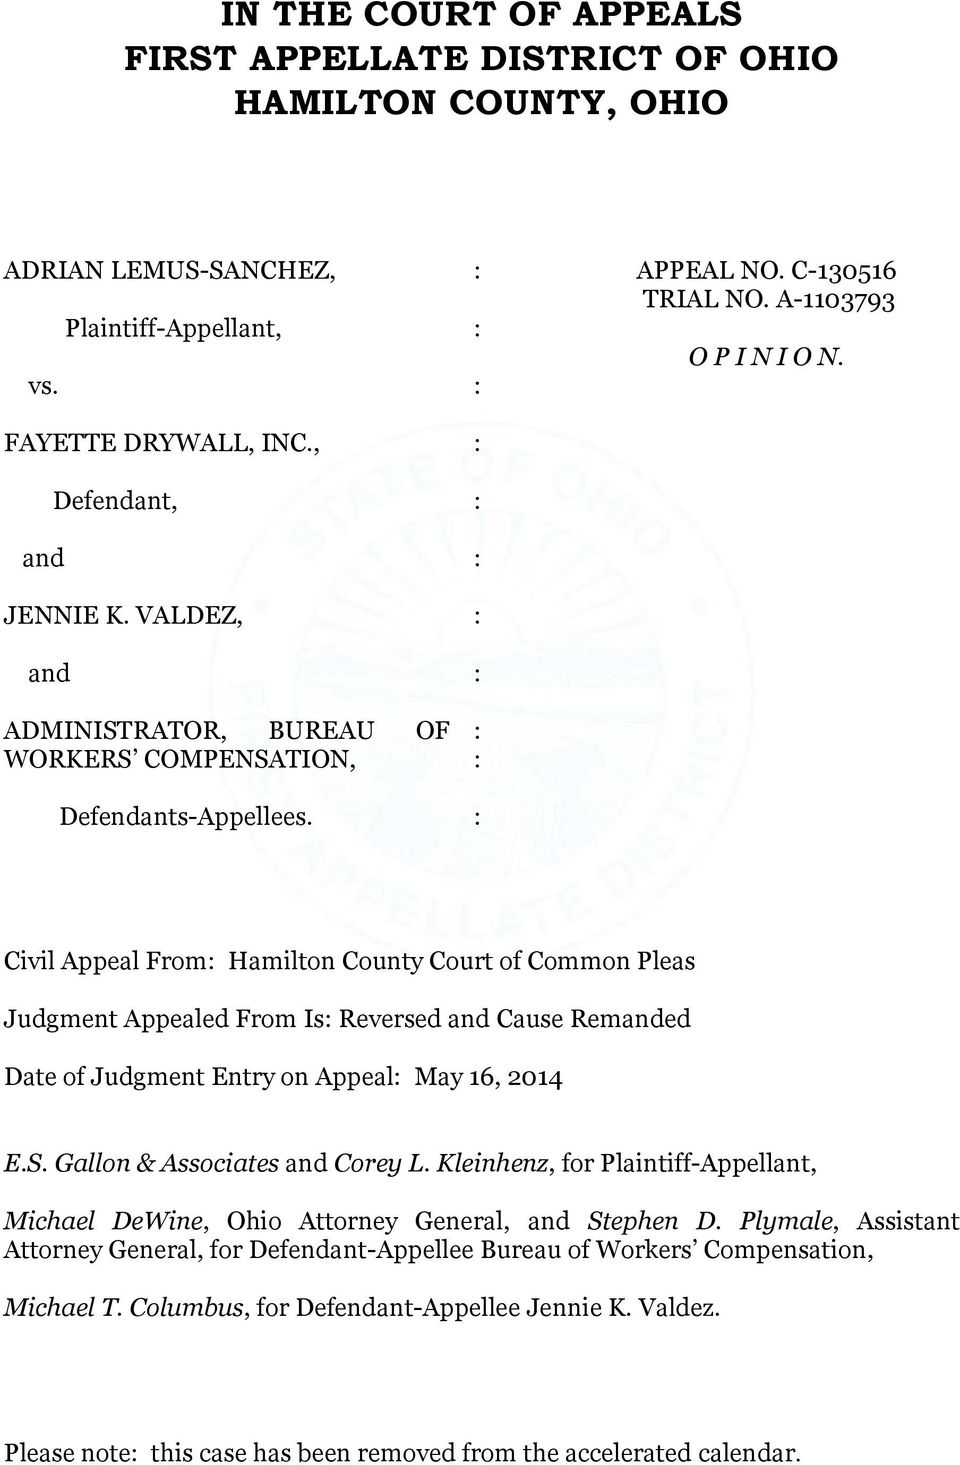 Civil Appeal From Hamilton County Court of Common Pleas Judgment Appealed From Is Reversed and Cause Remanded Date of Judgment Entry on Appeal May 16, 2014 E.S. Gallon & Associates and Corey L.